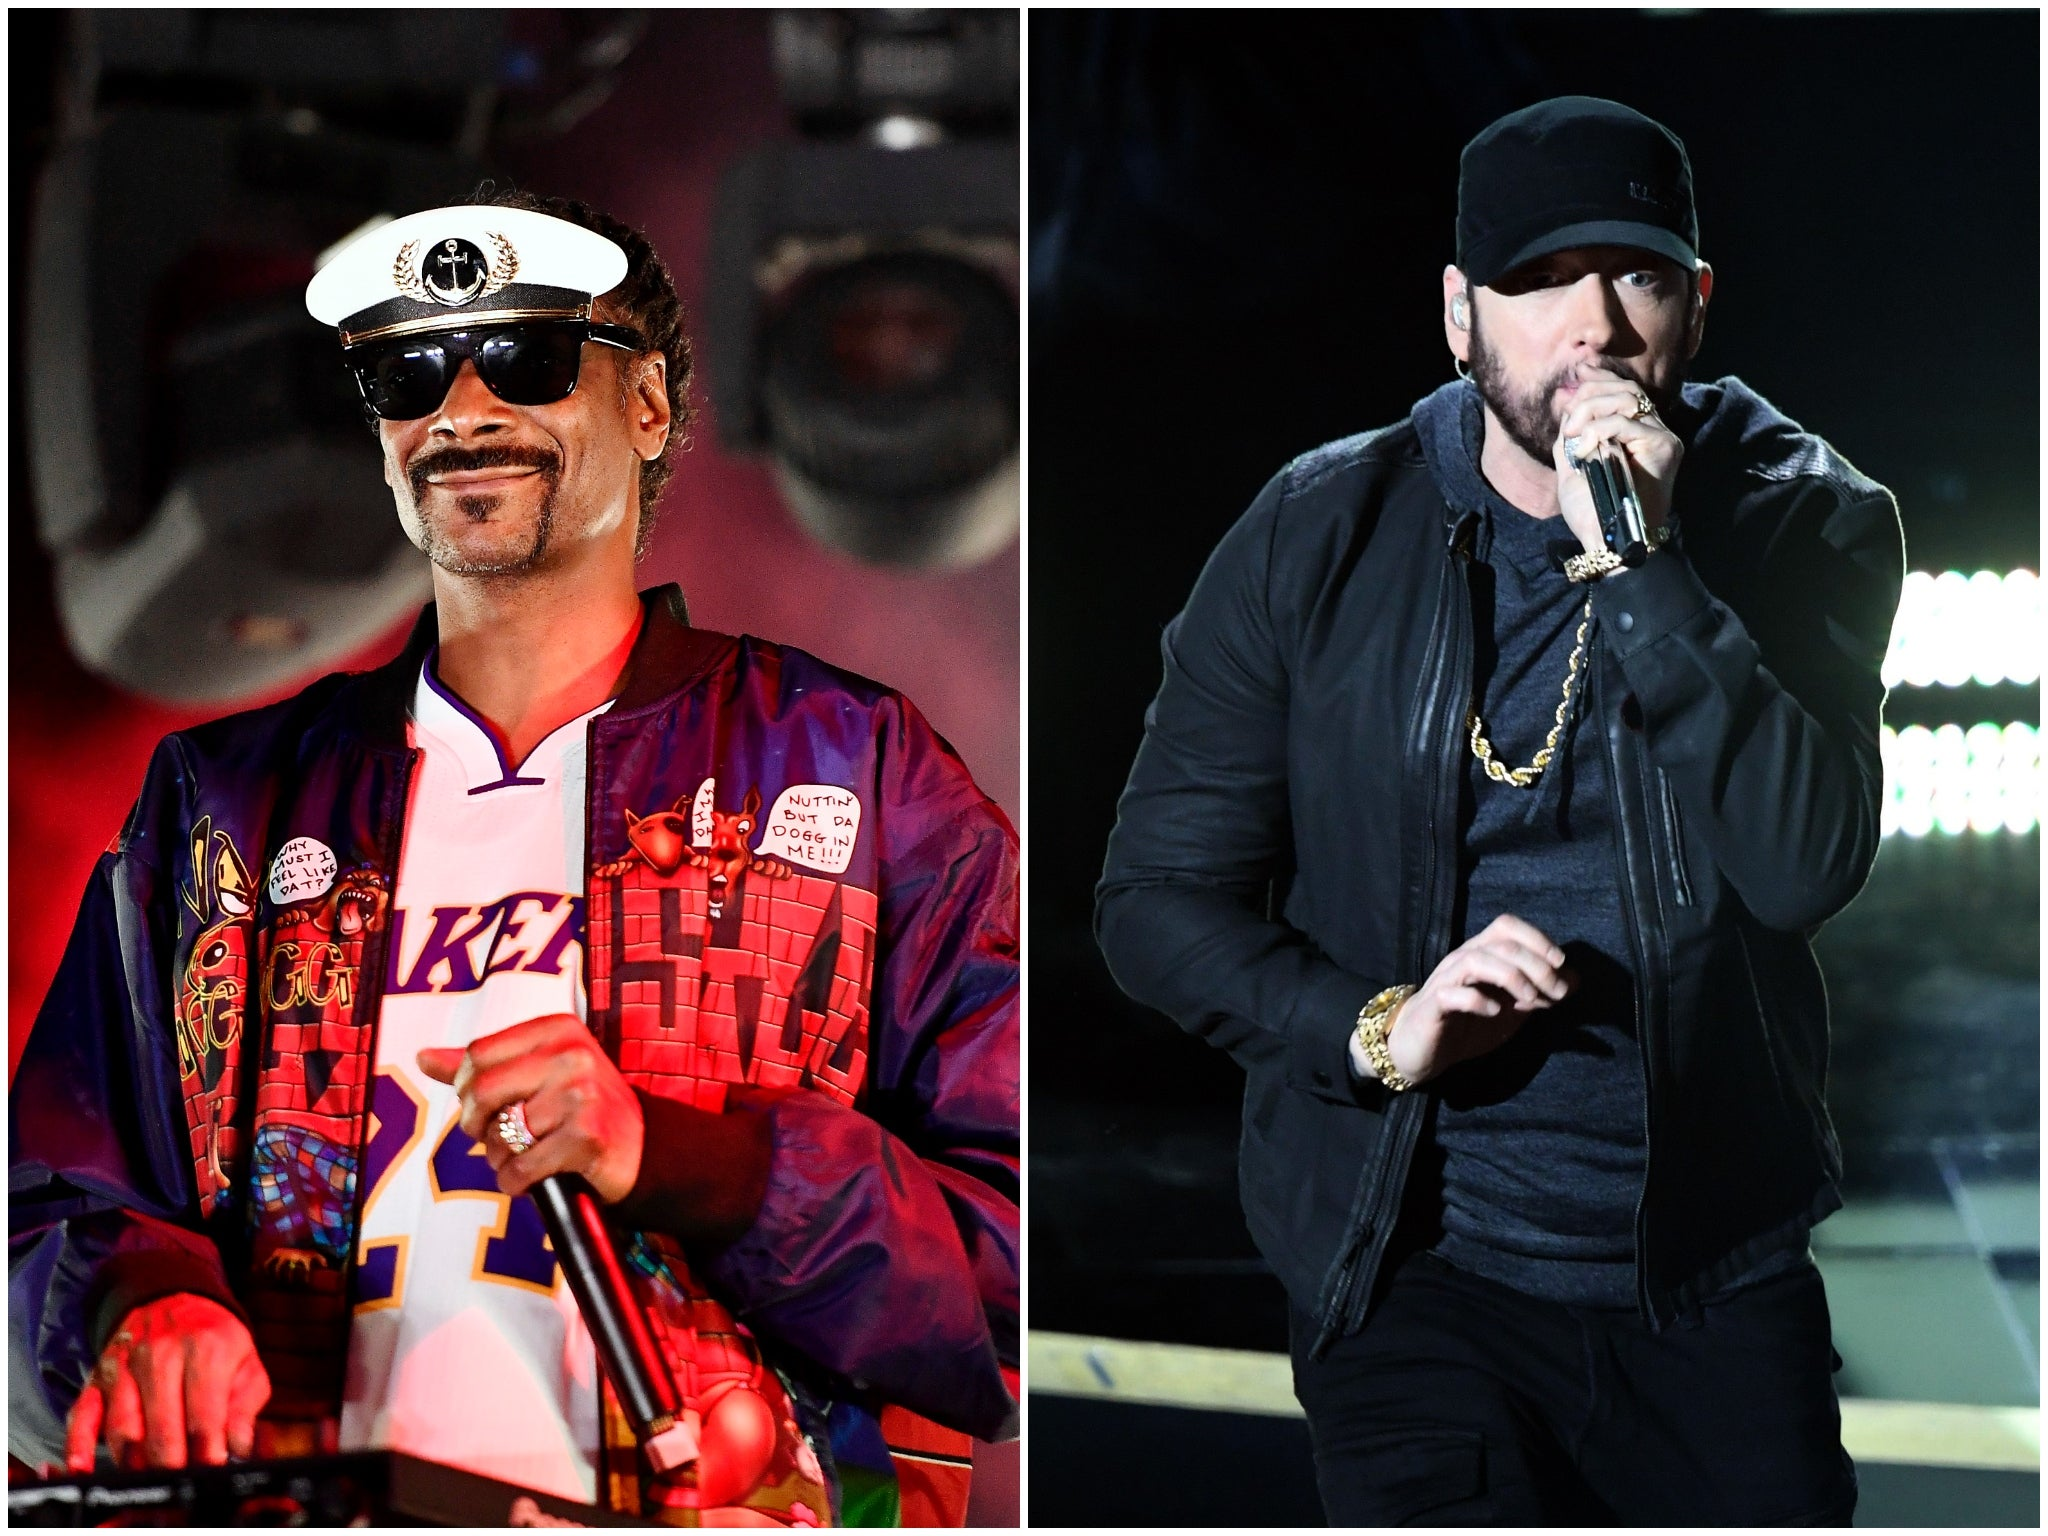 Snoop Dogg says former feud with Eminem is 'family business'